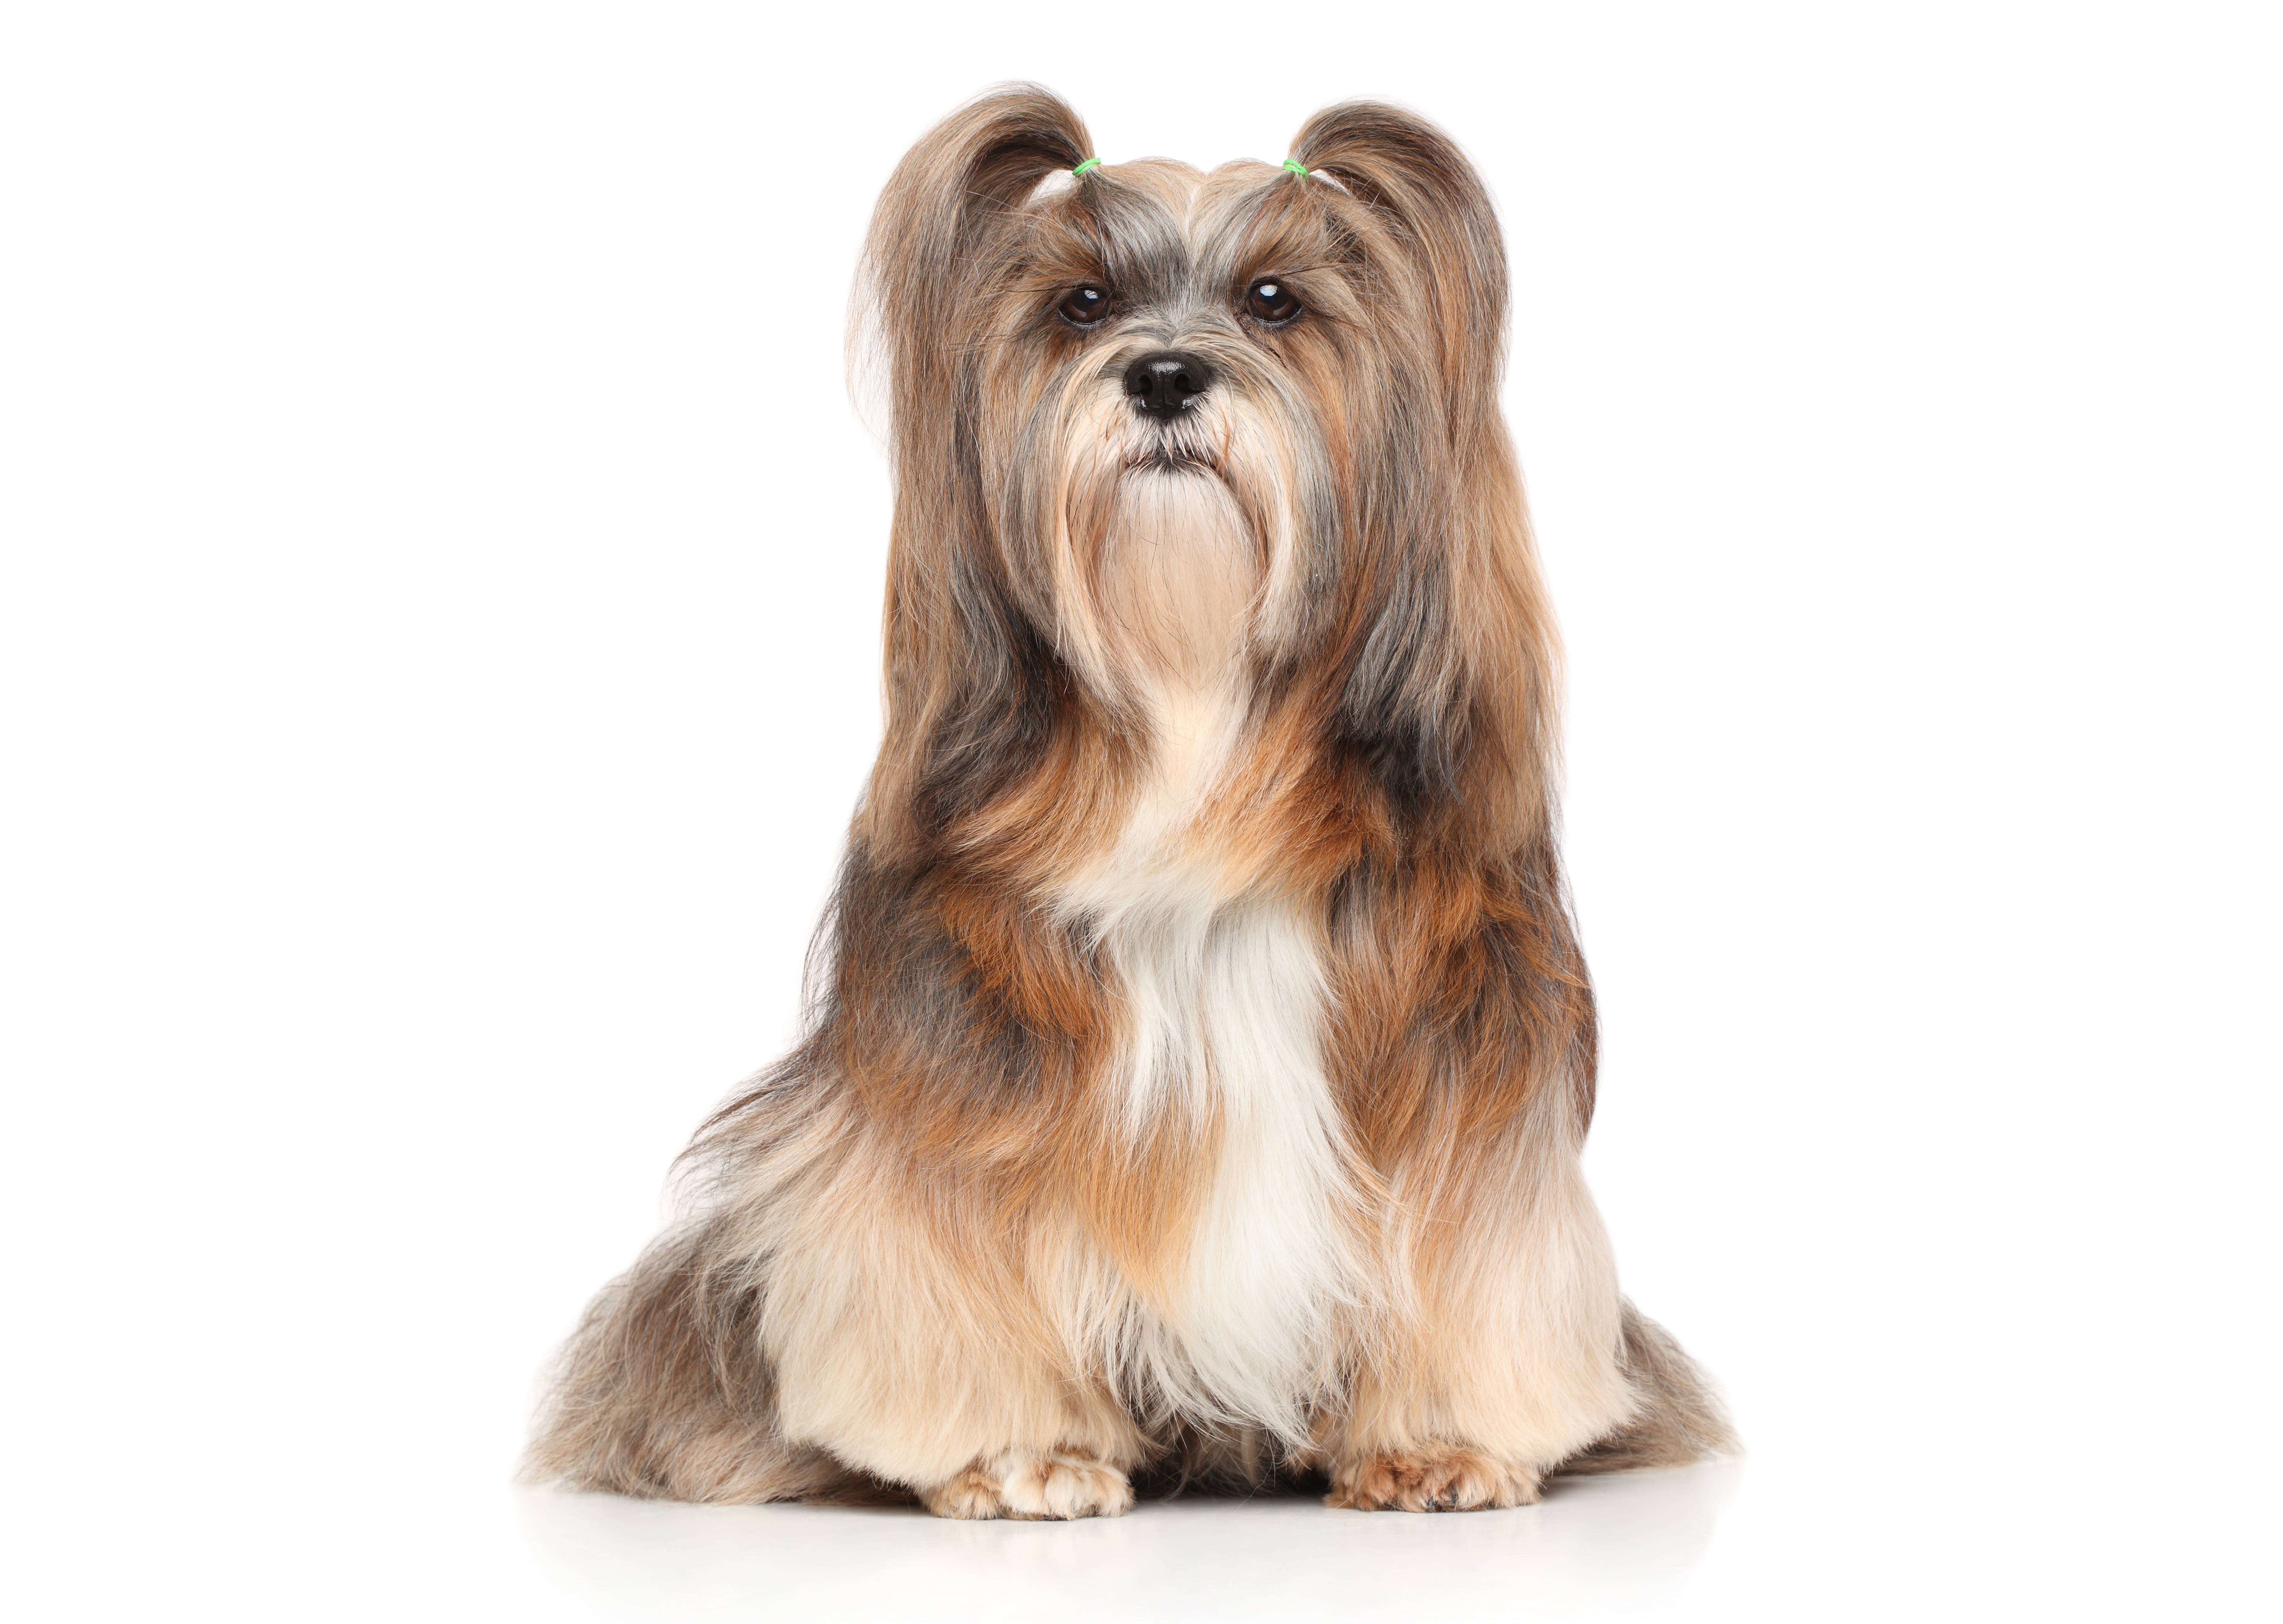 Lhasa Apso dog sitting in front of a white background